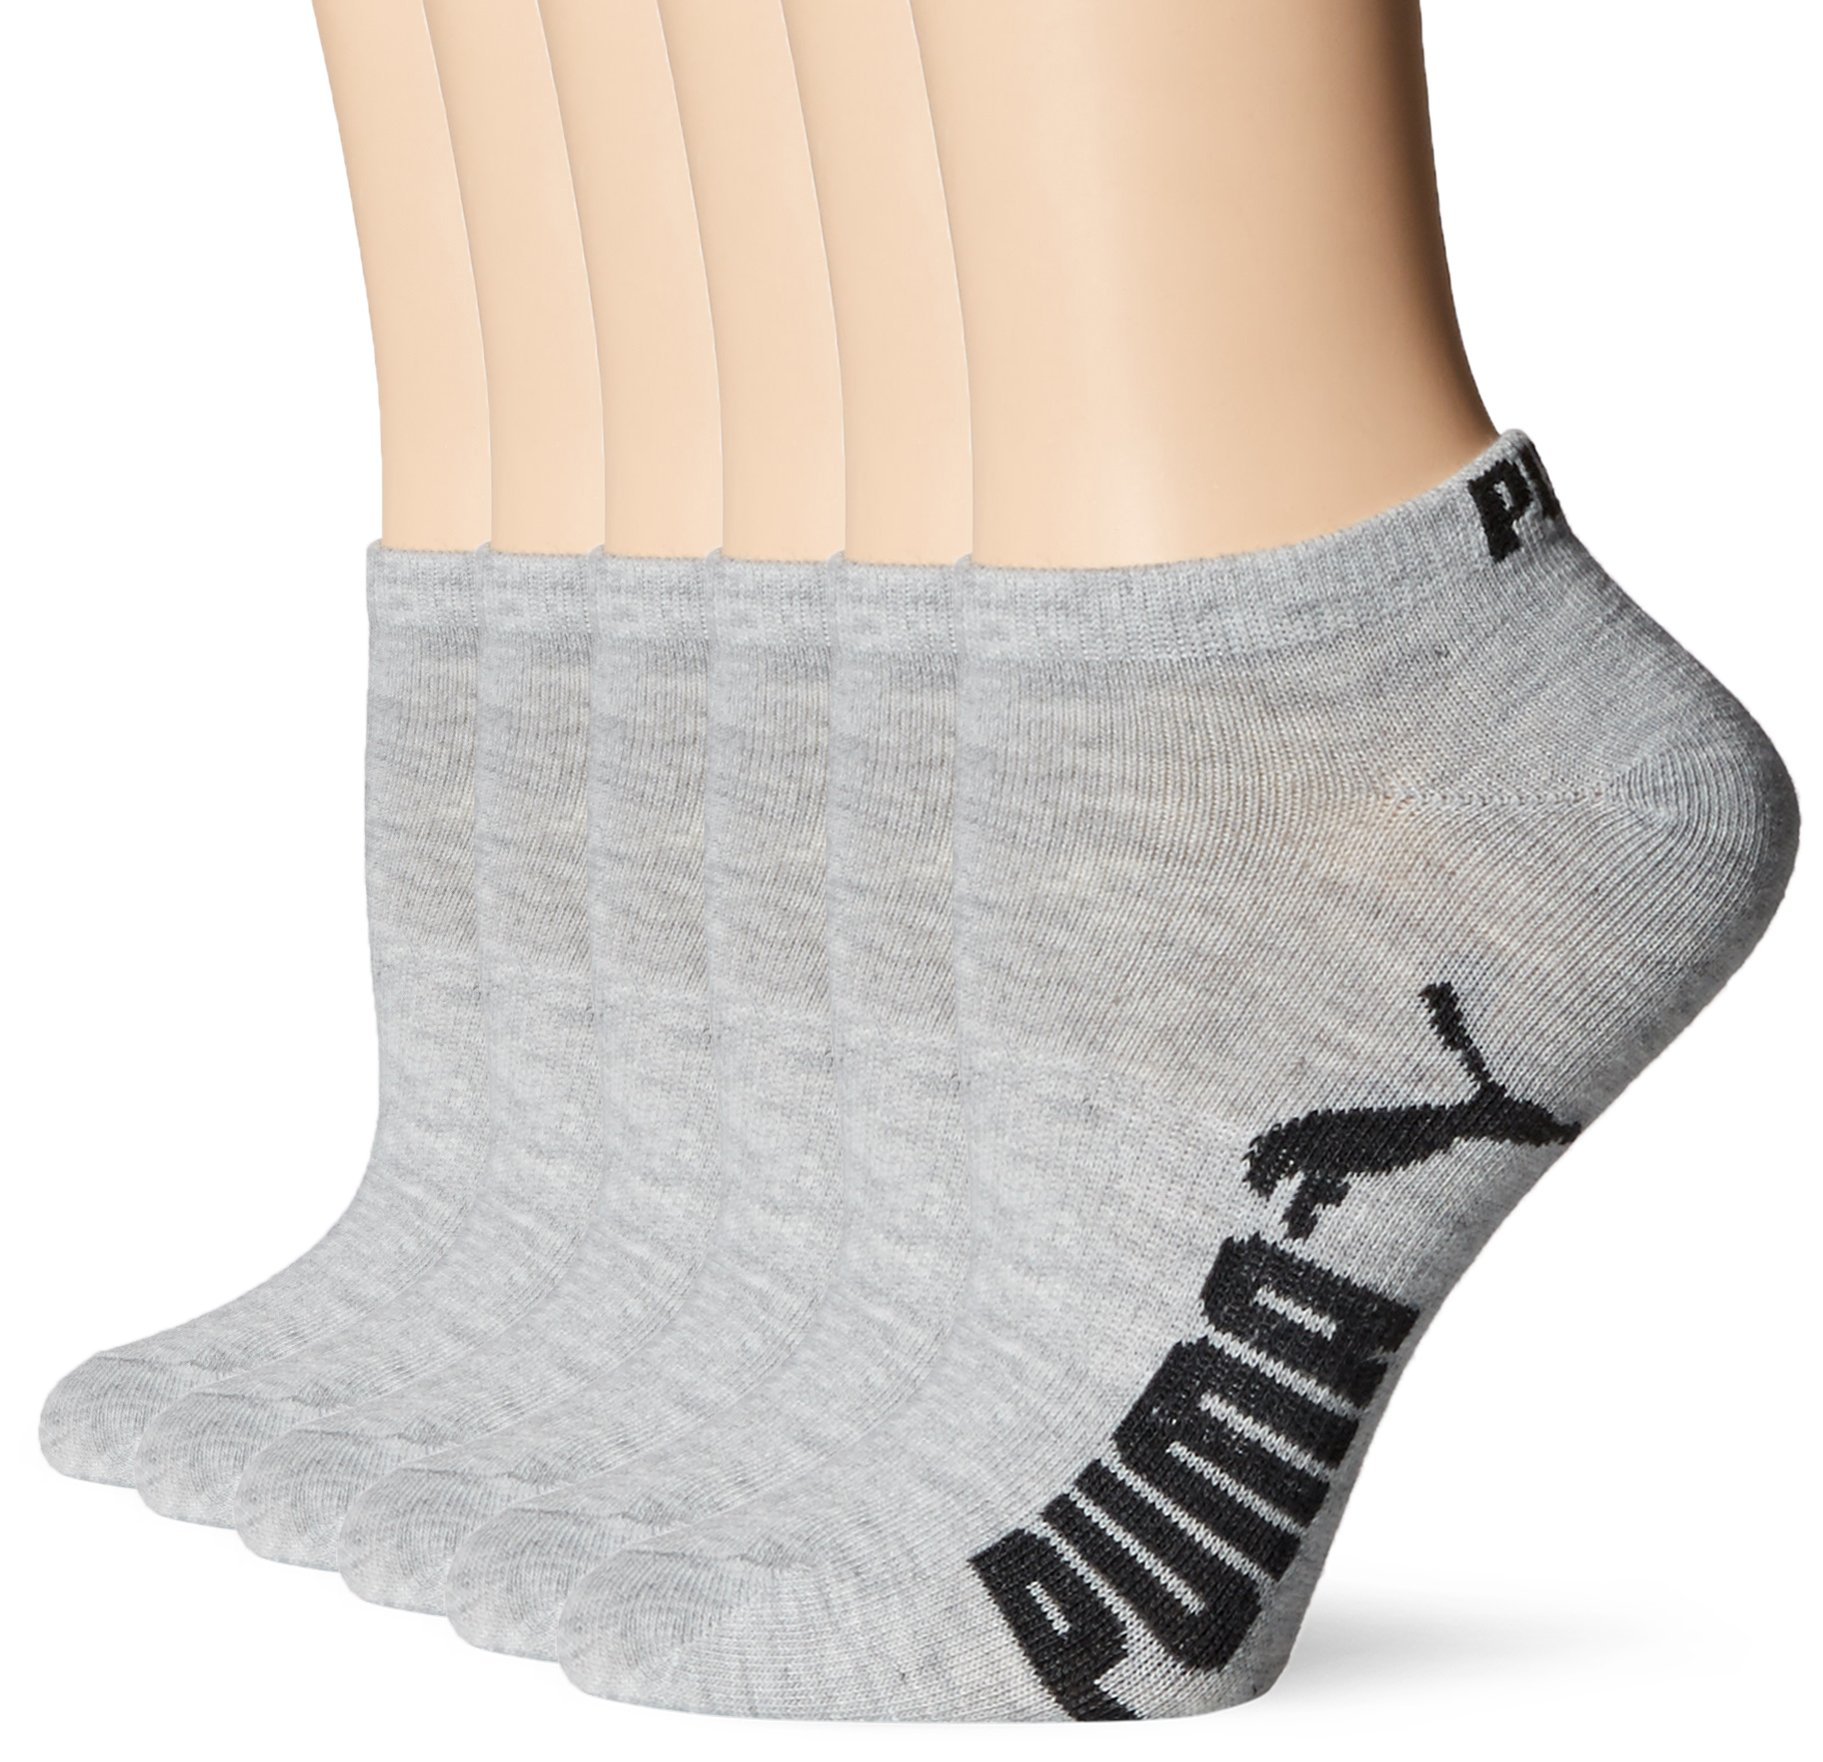 PUMA Women's 6 Pack Runner Socks, Grey, 9-11